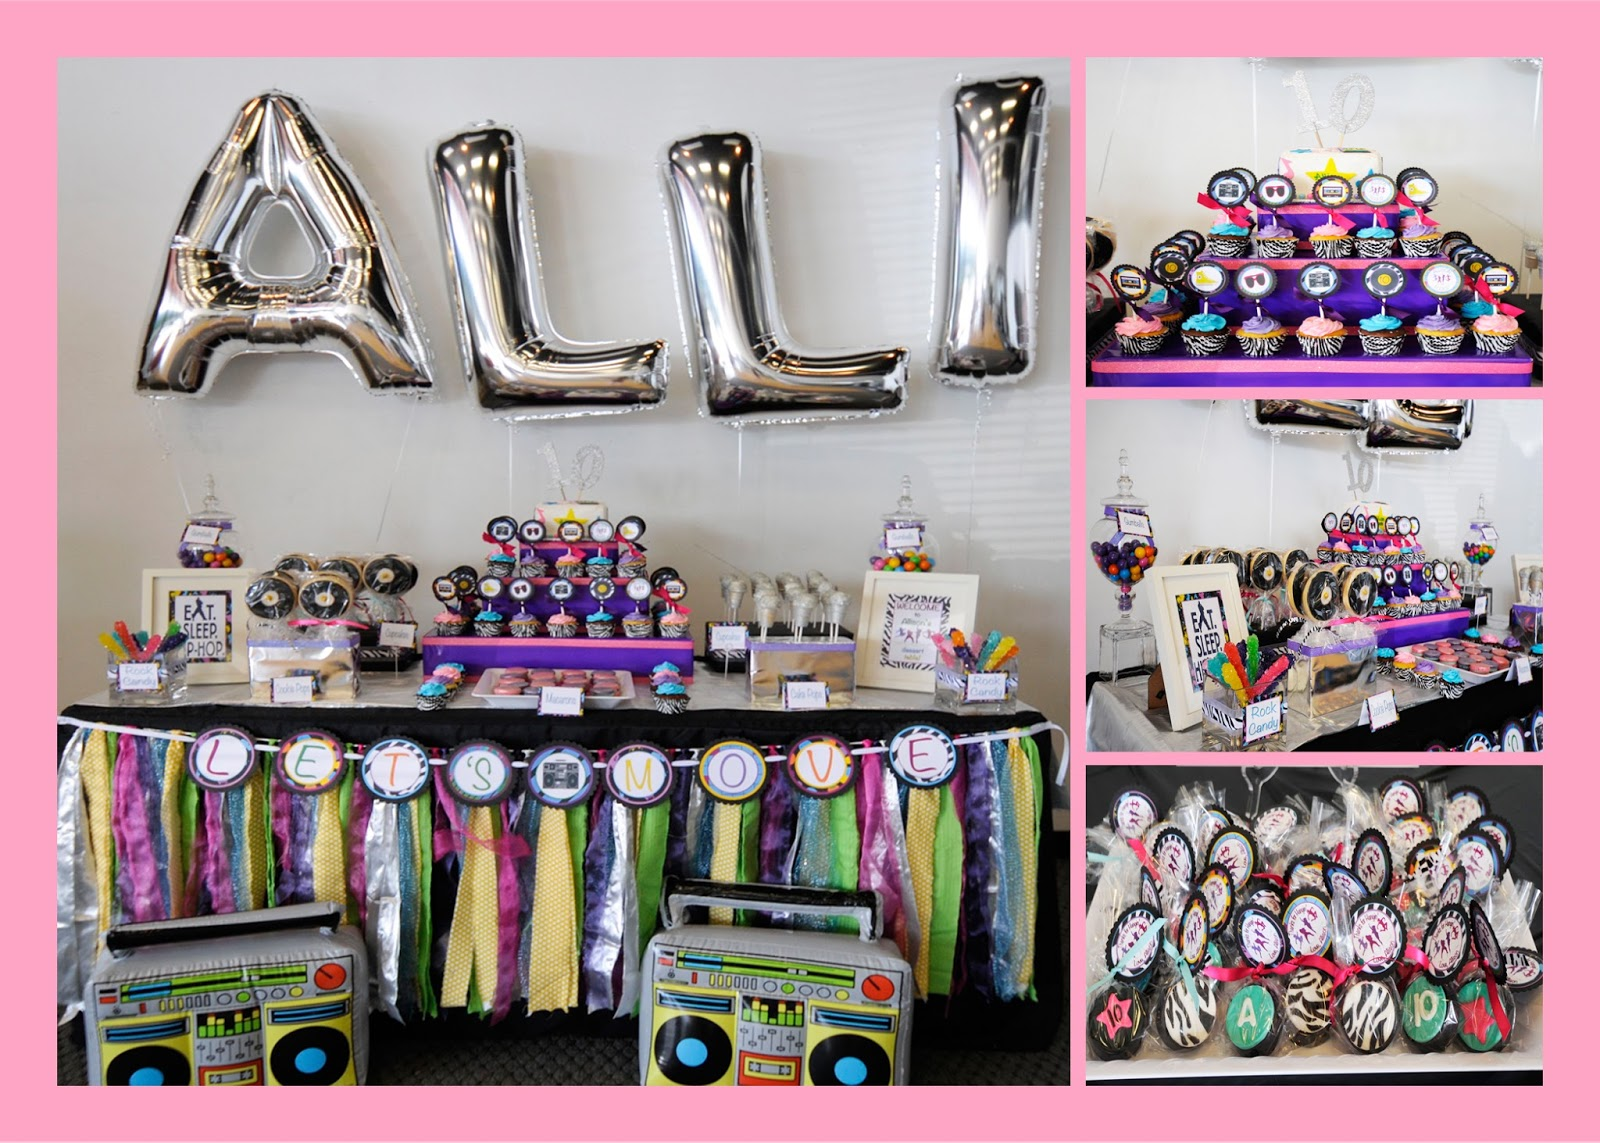 Allison S Hip Hop Themed 10th Birthday Party Craftykelle Party Blog